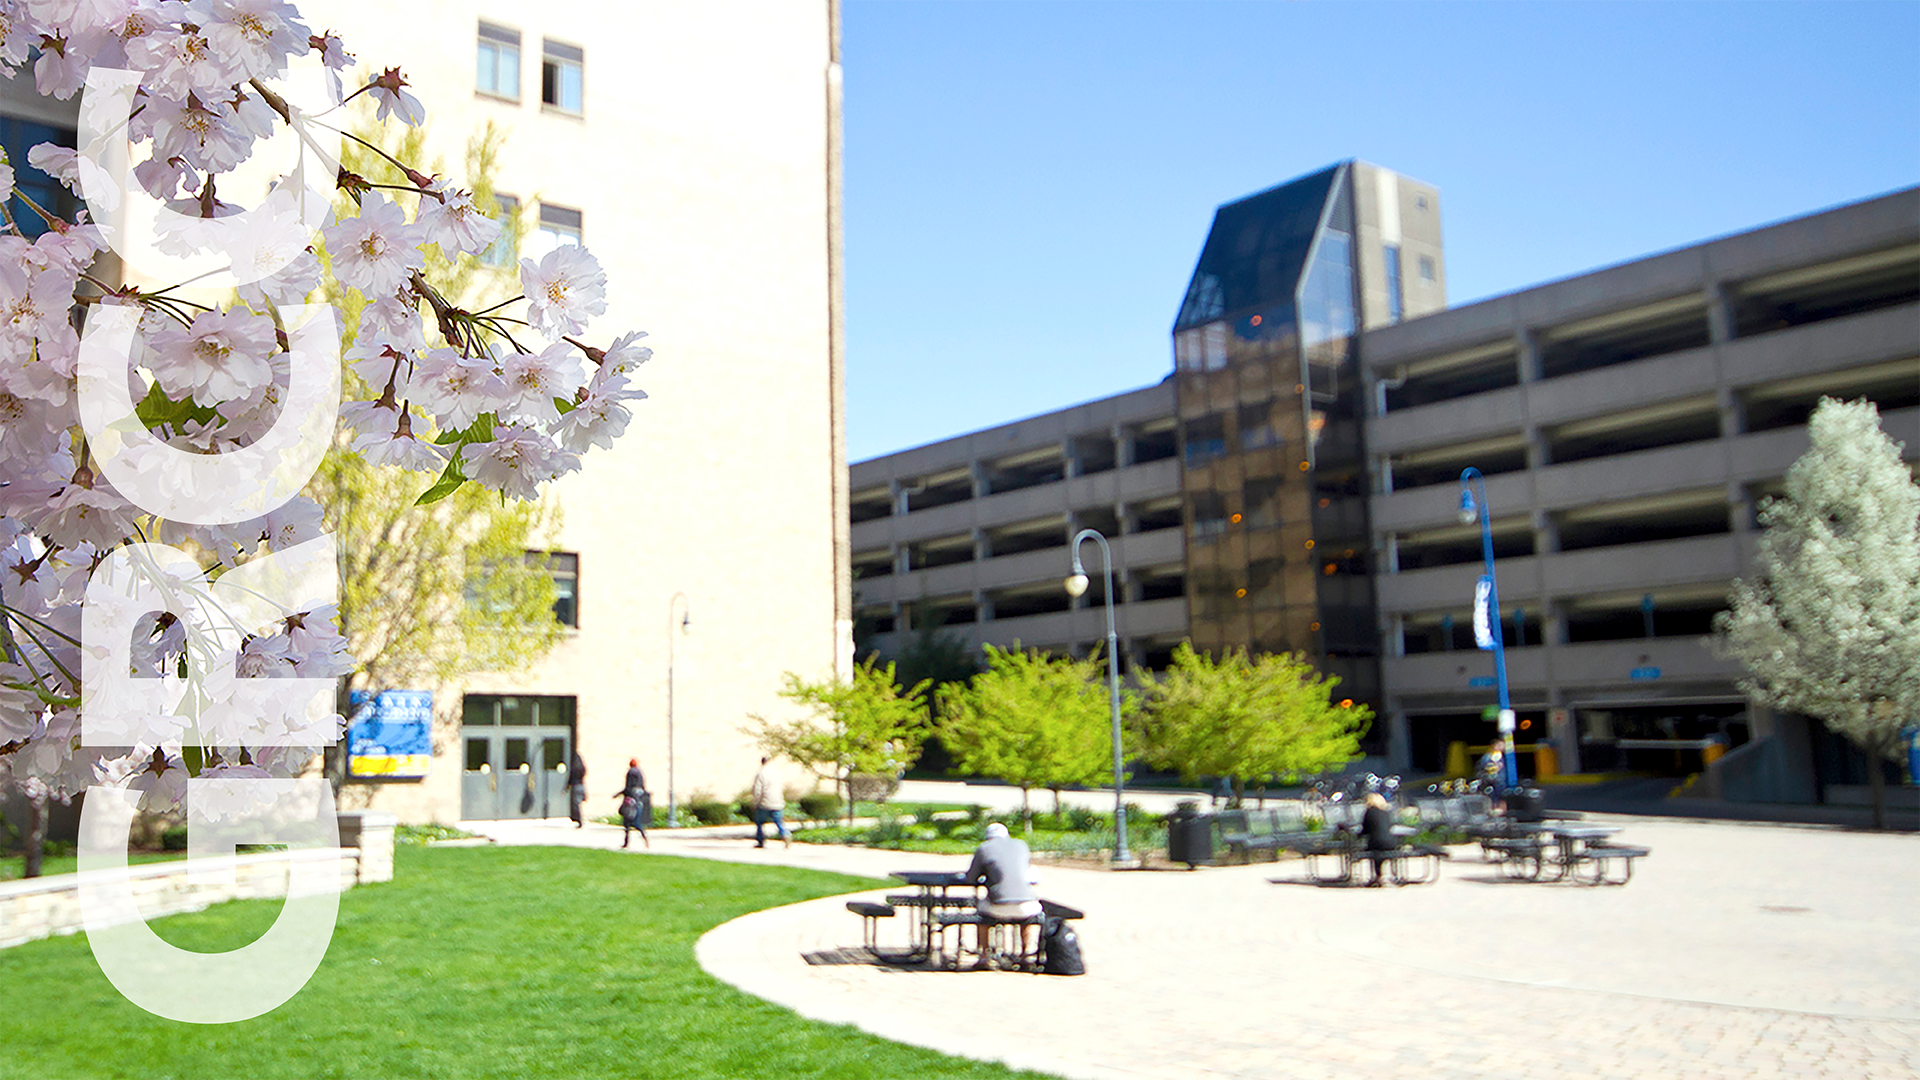 Main Campus in spring